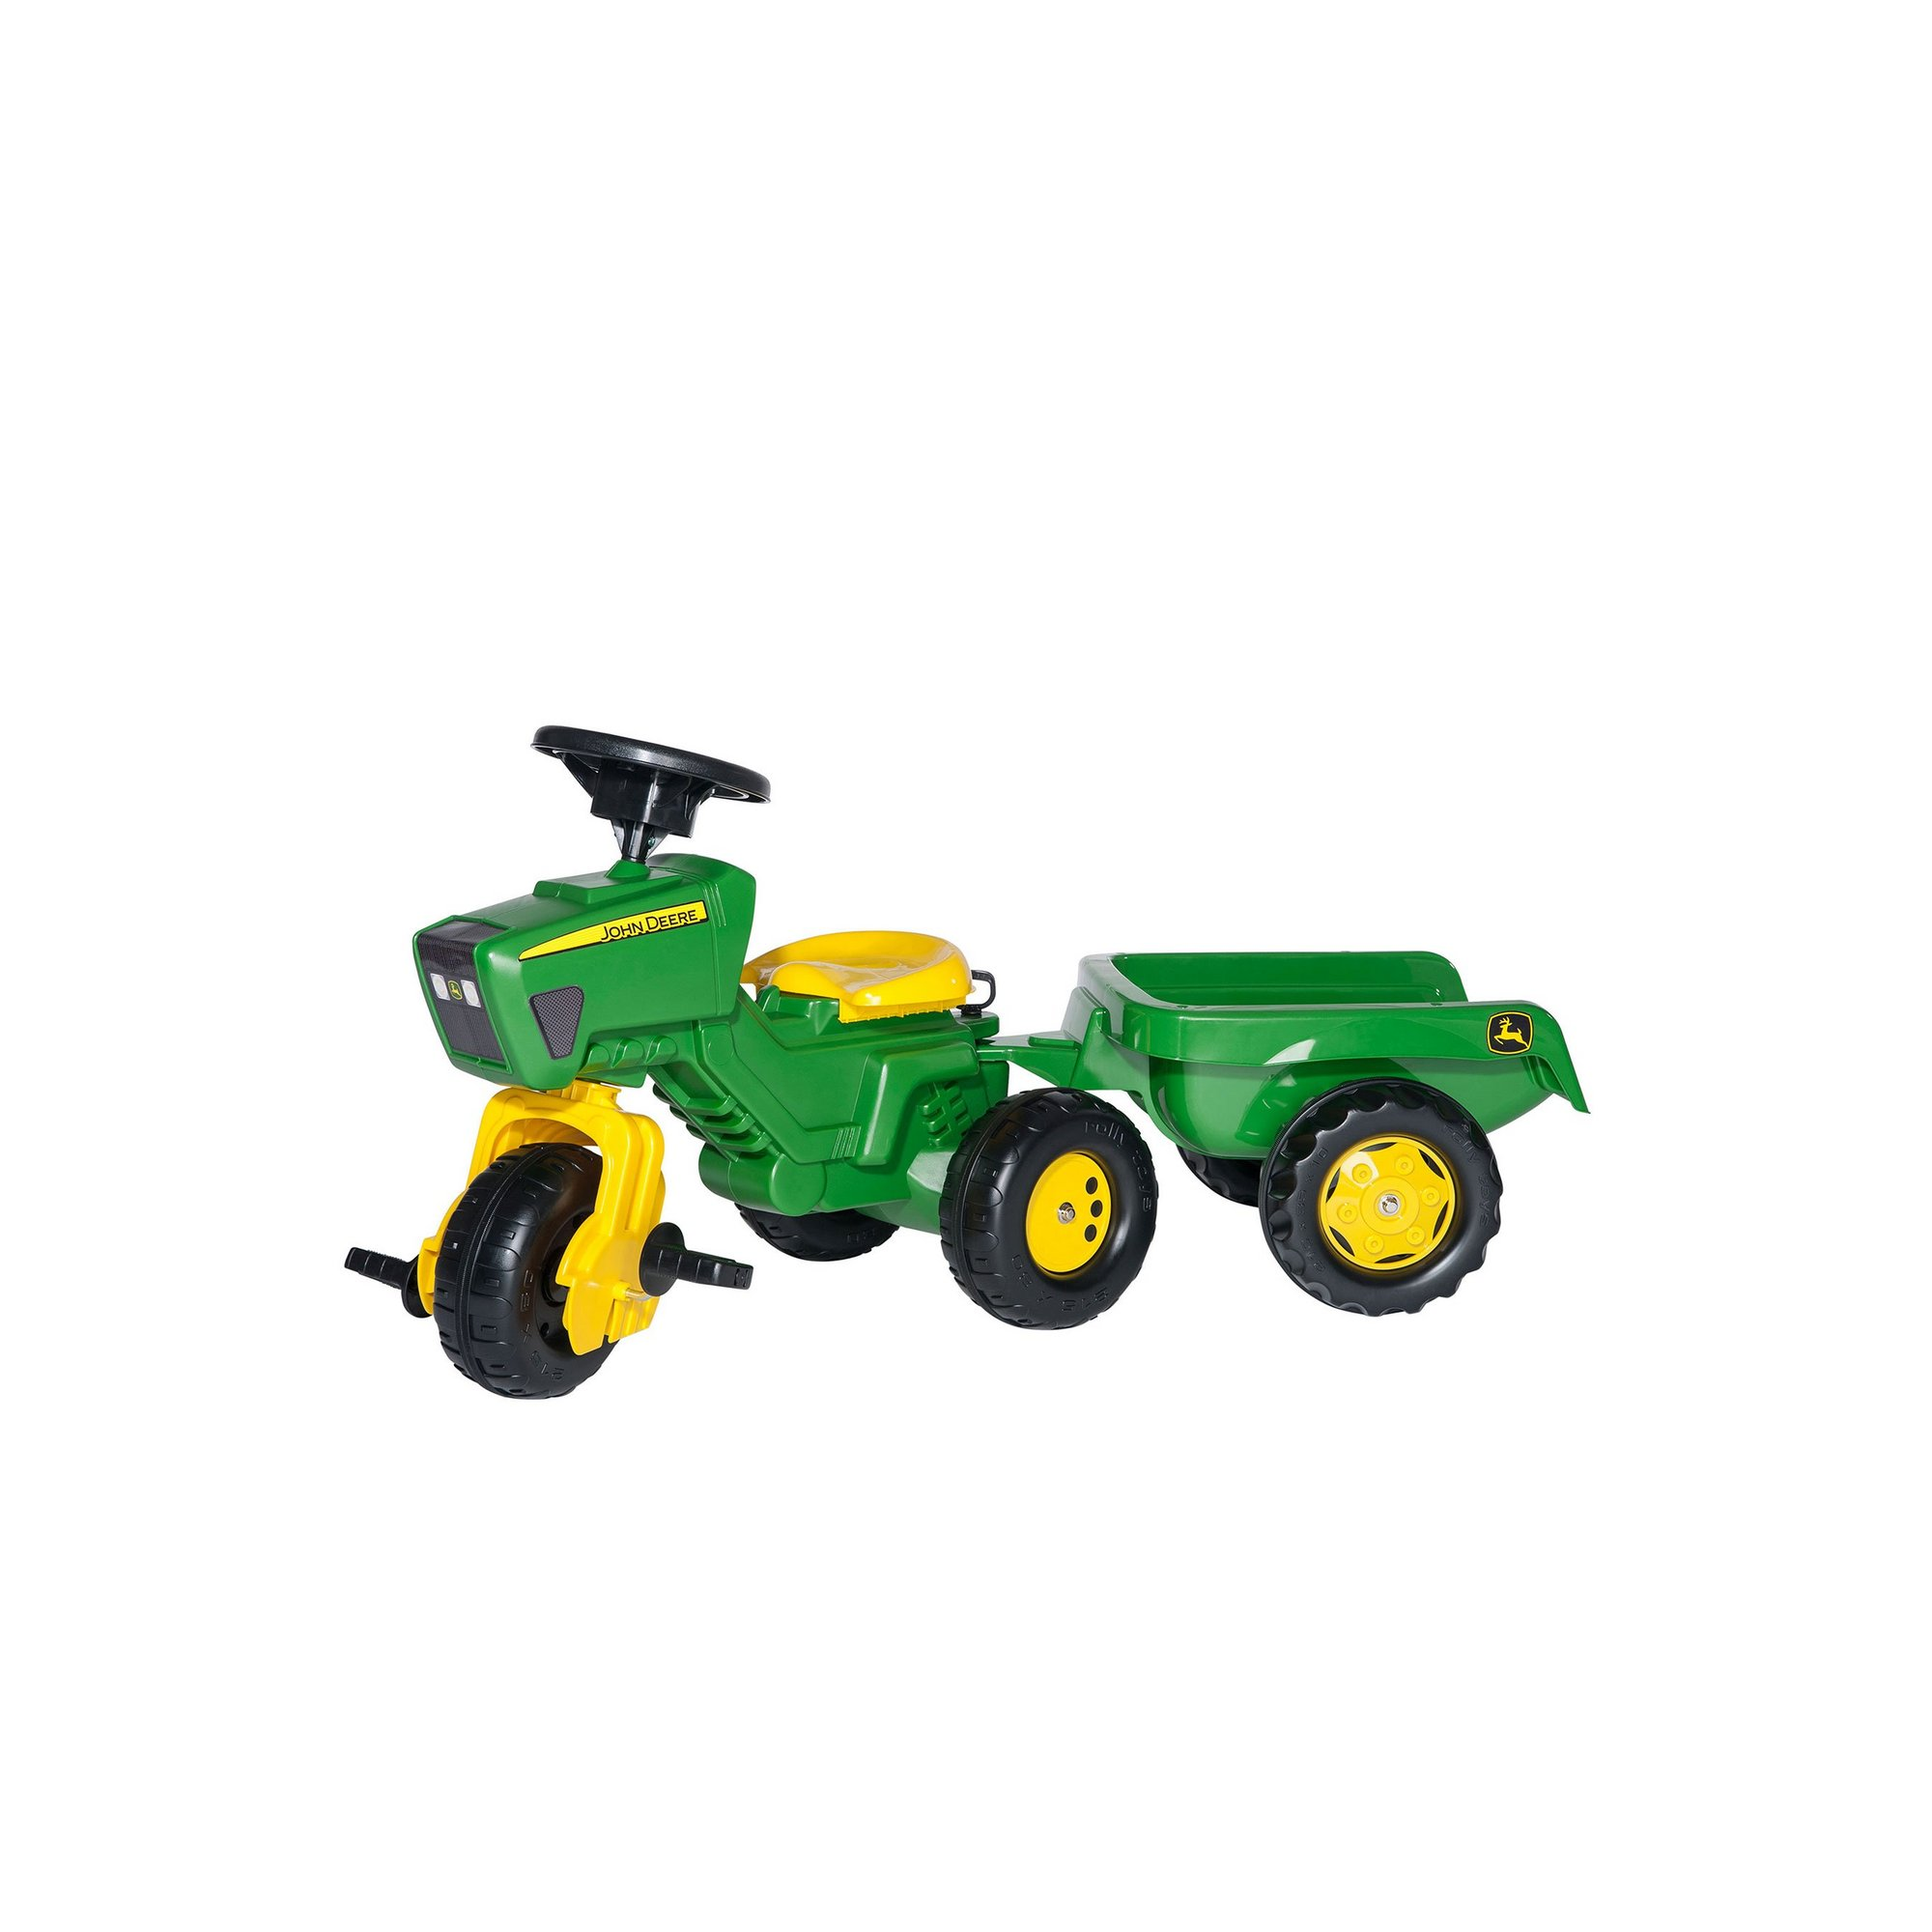 Image of John Deere Trio Tractor with Electronic Steering Wheel and Trailer